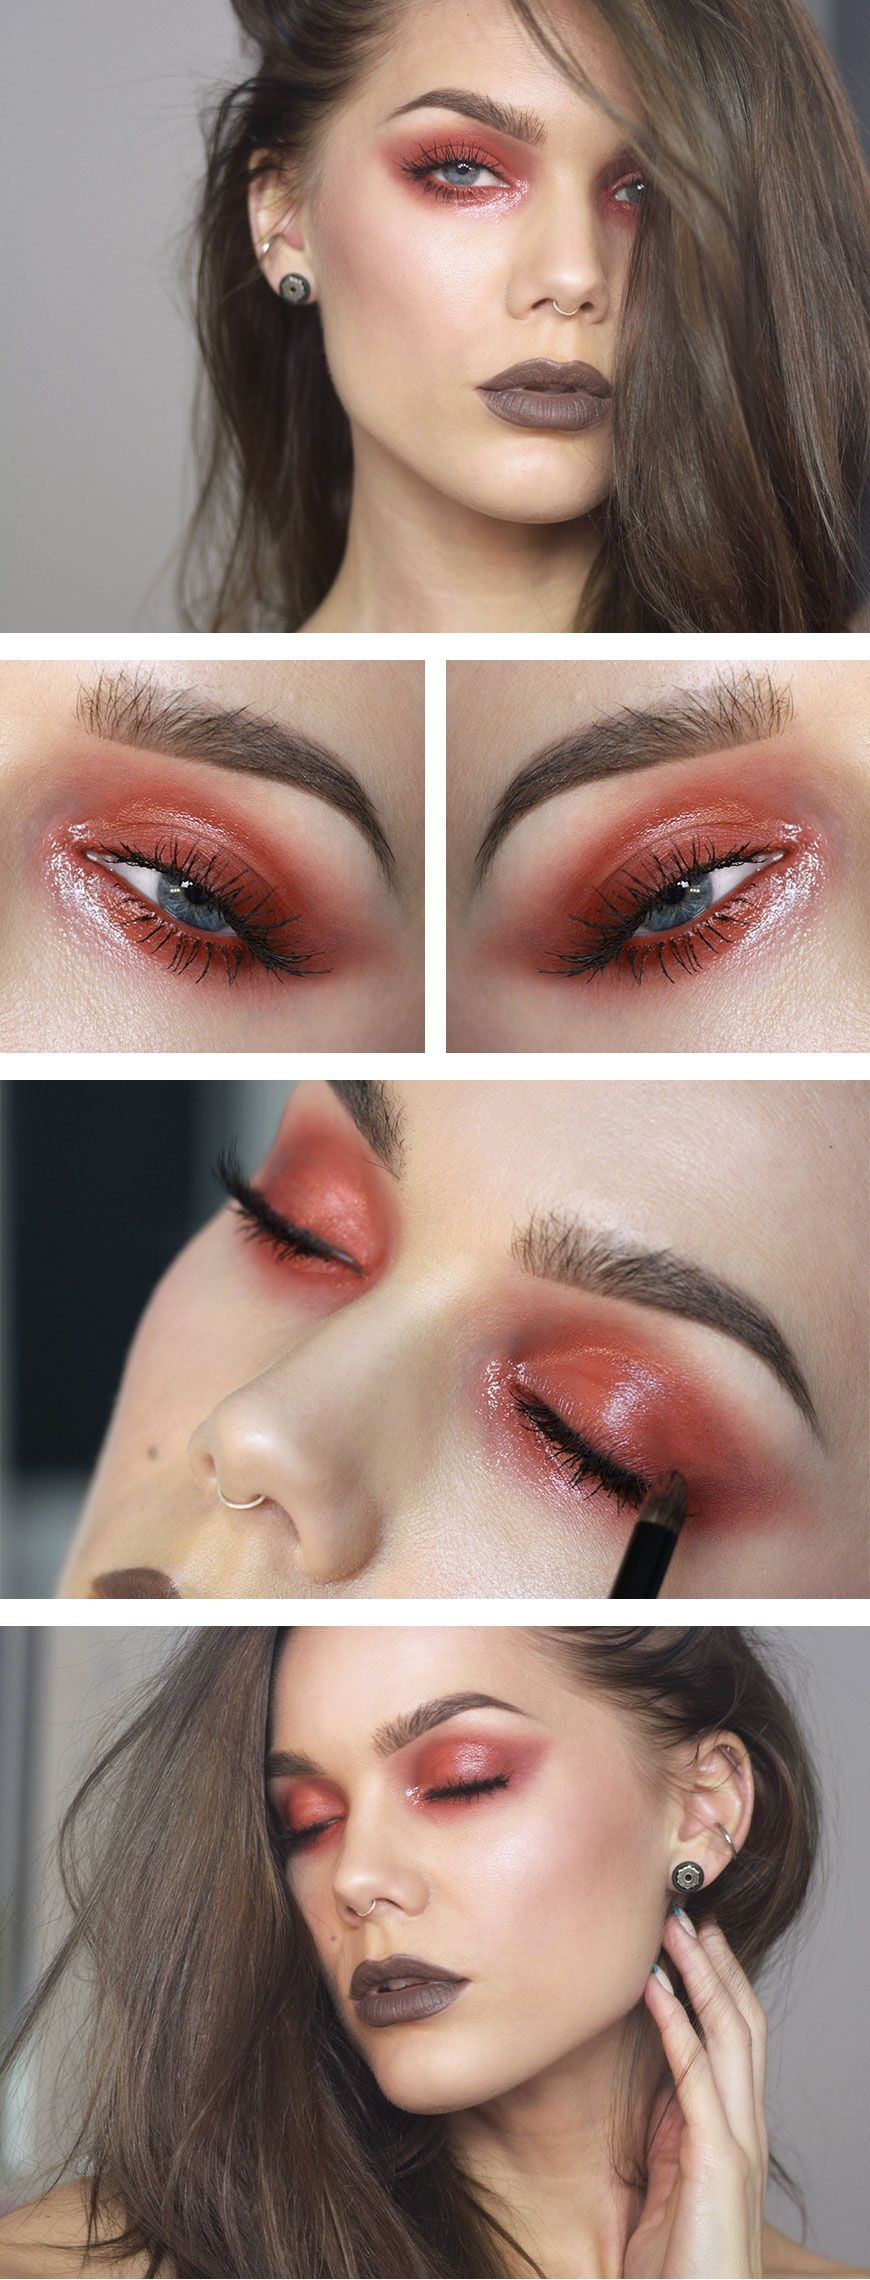 Glossy red ♥ Linda Hallberg - incredible makeup artist. Very inspiring -- from her daily makeup blog. | Inspiration for upcoming projects by Adagio Images at www.adagio-images.com/modeling or www.facebook.com/adagioimages | #makeup #makeupinspiration ♥